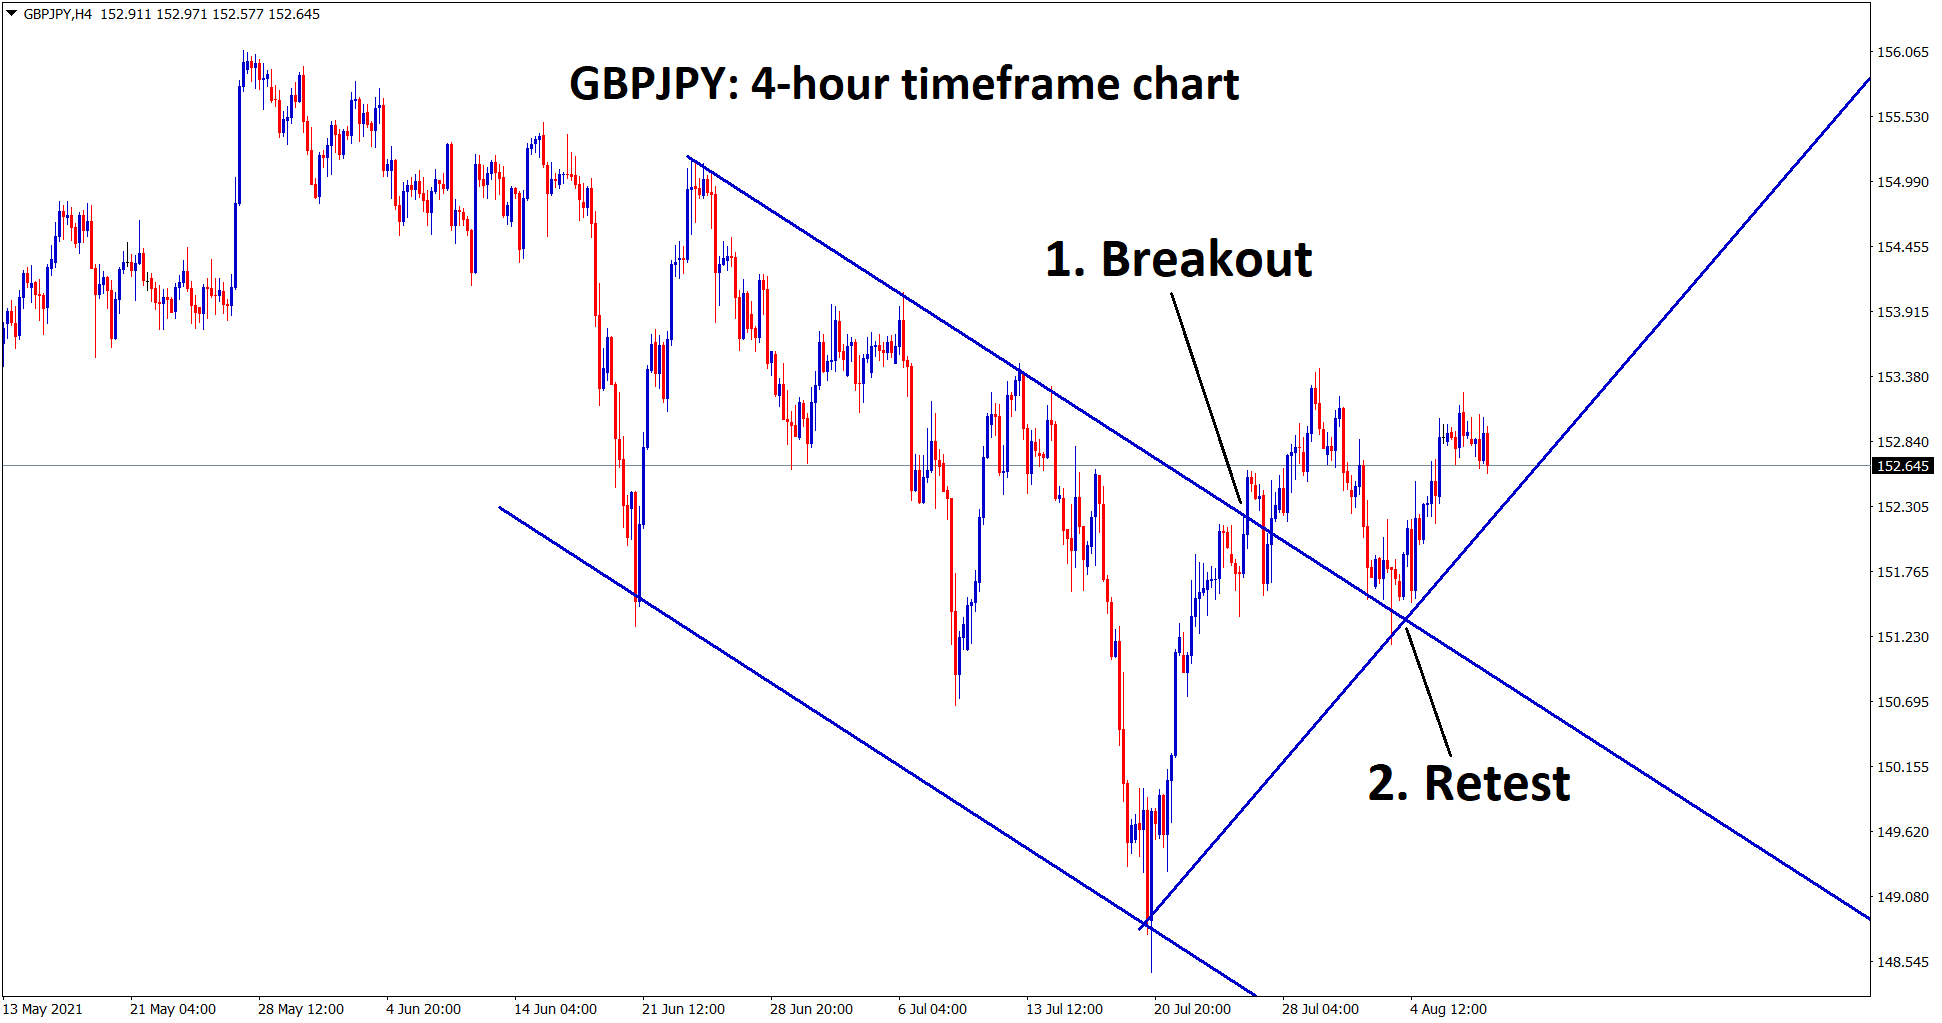 GBPJPY has broken the top of the descending channel retested the broken level and starts to range now.